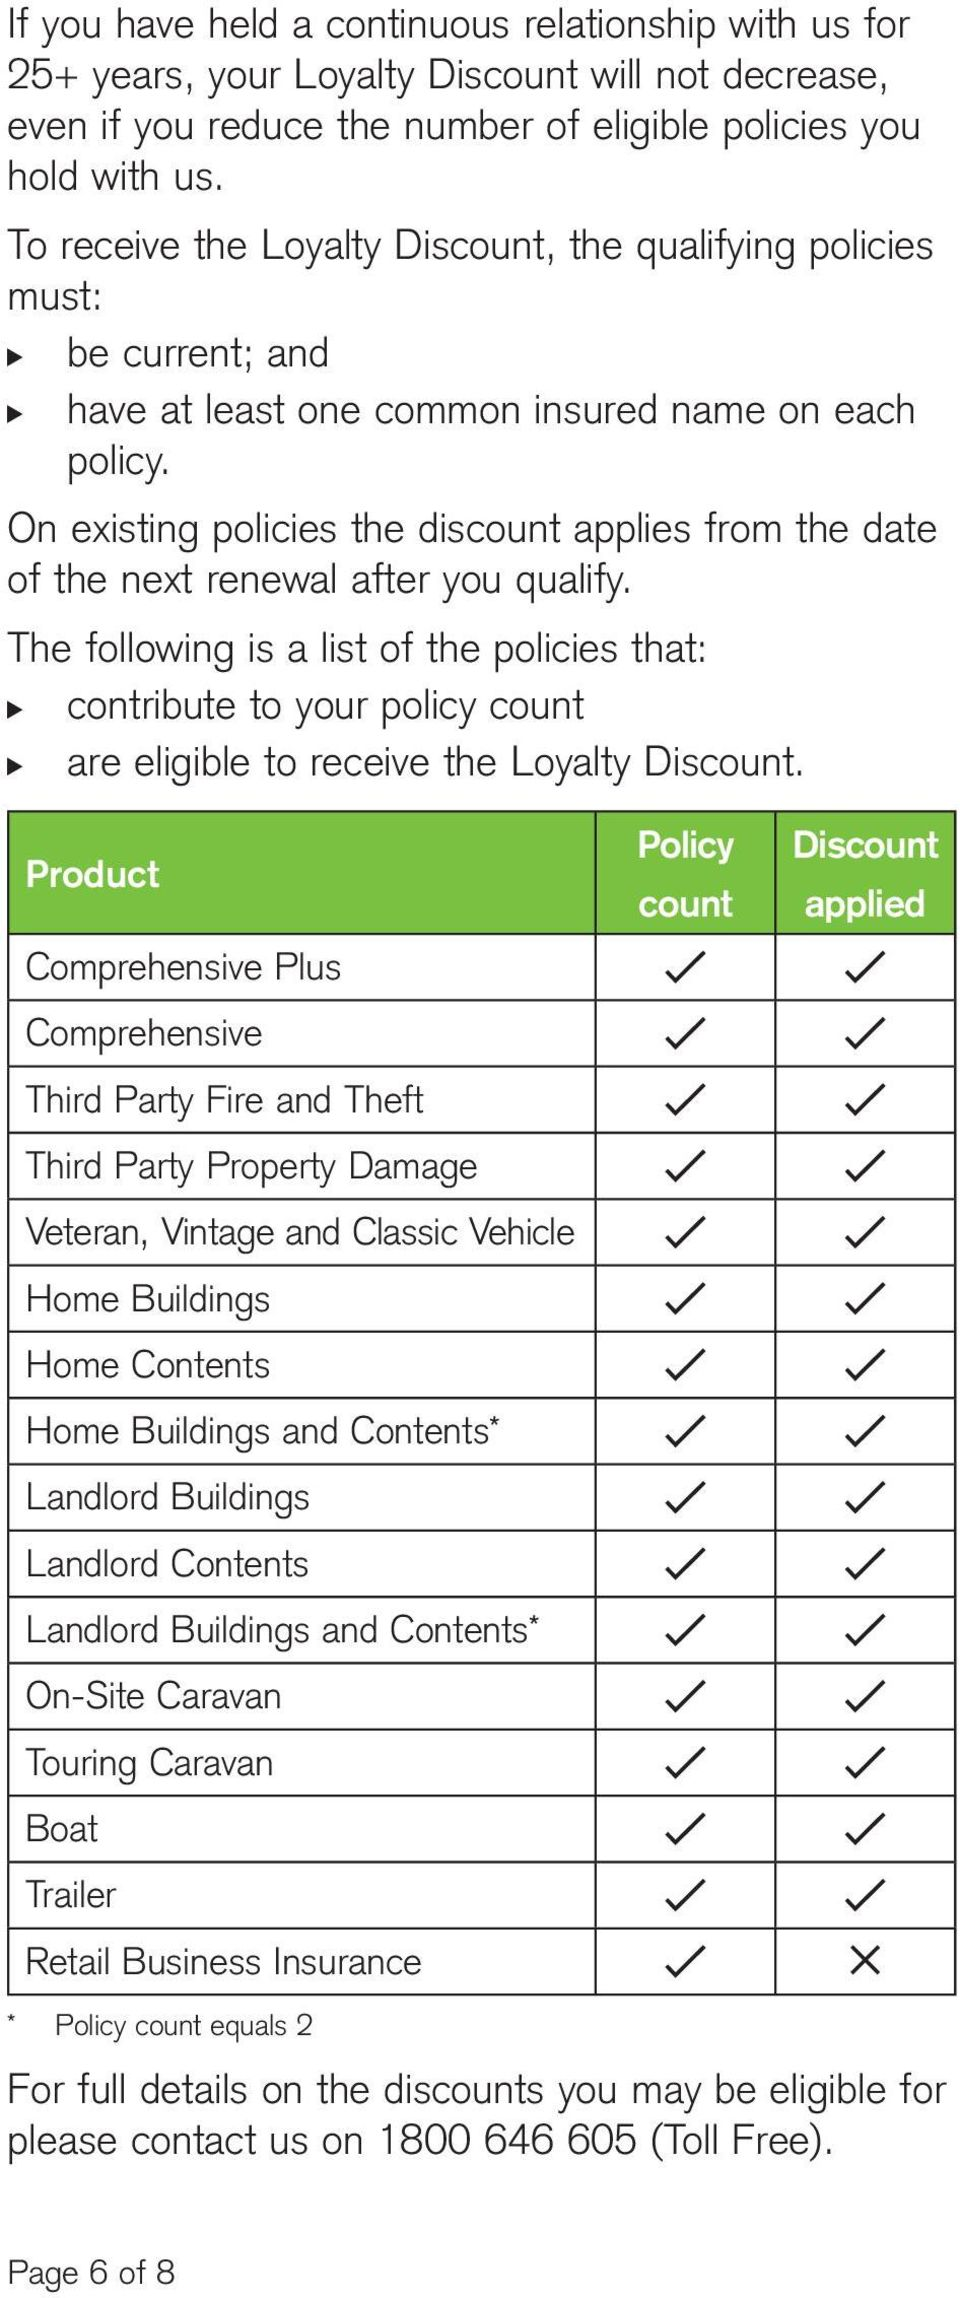 On existing policies the discount applies from the date of the next renewal after you qualify.